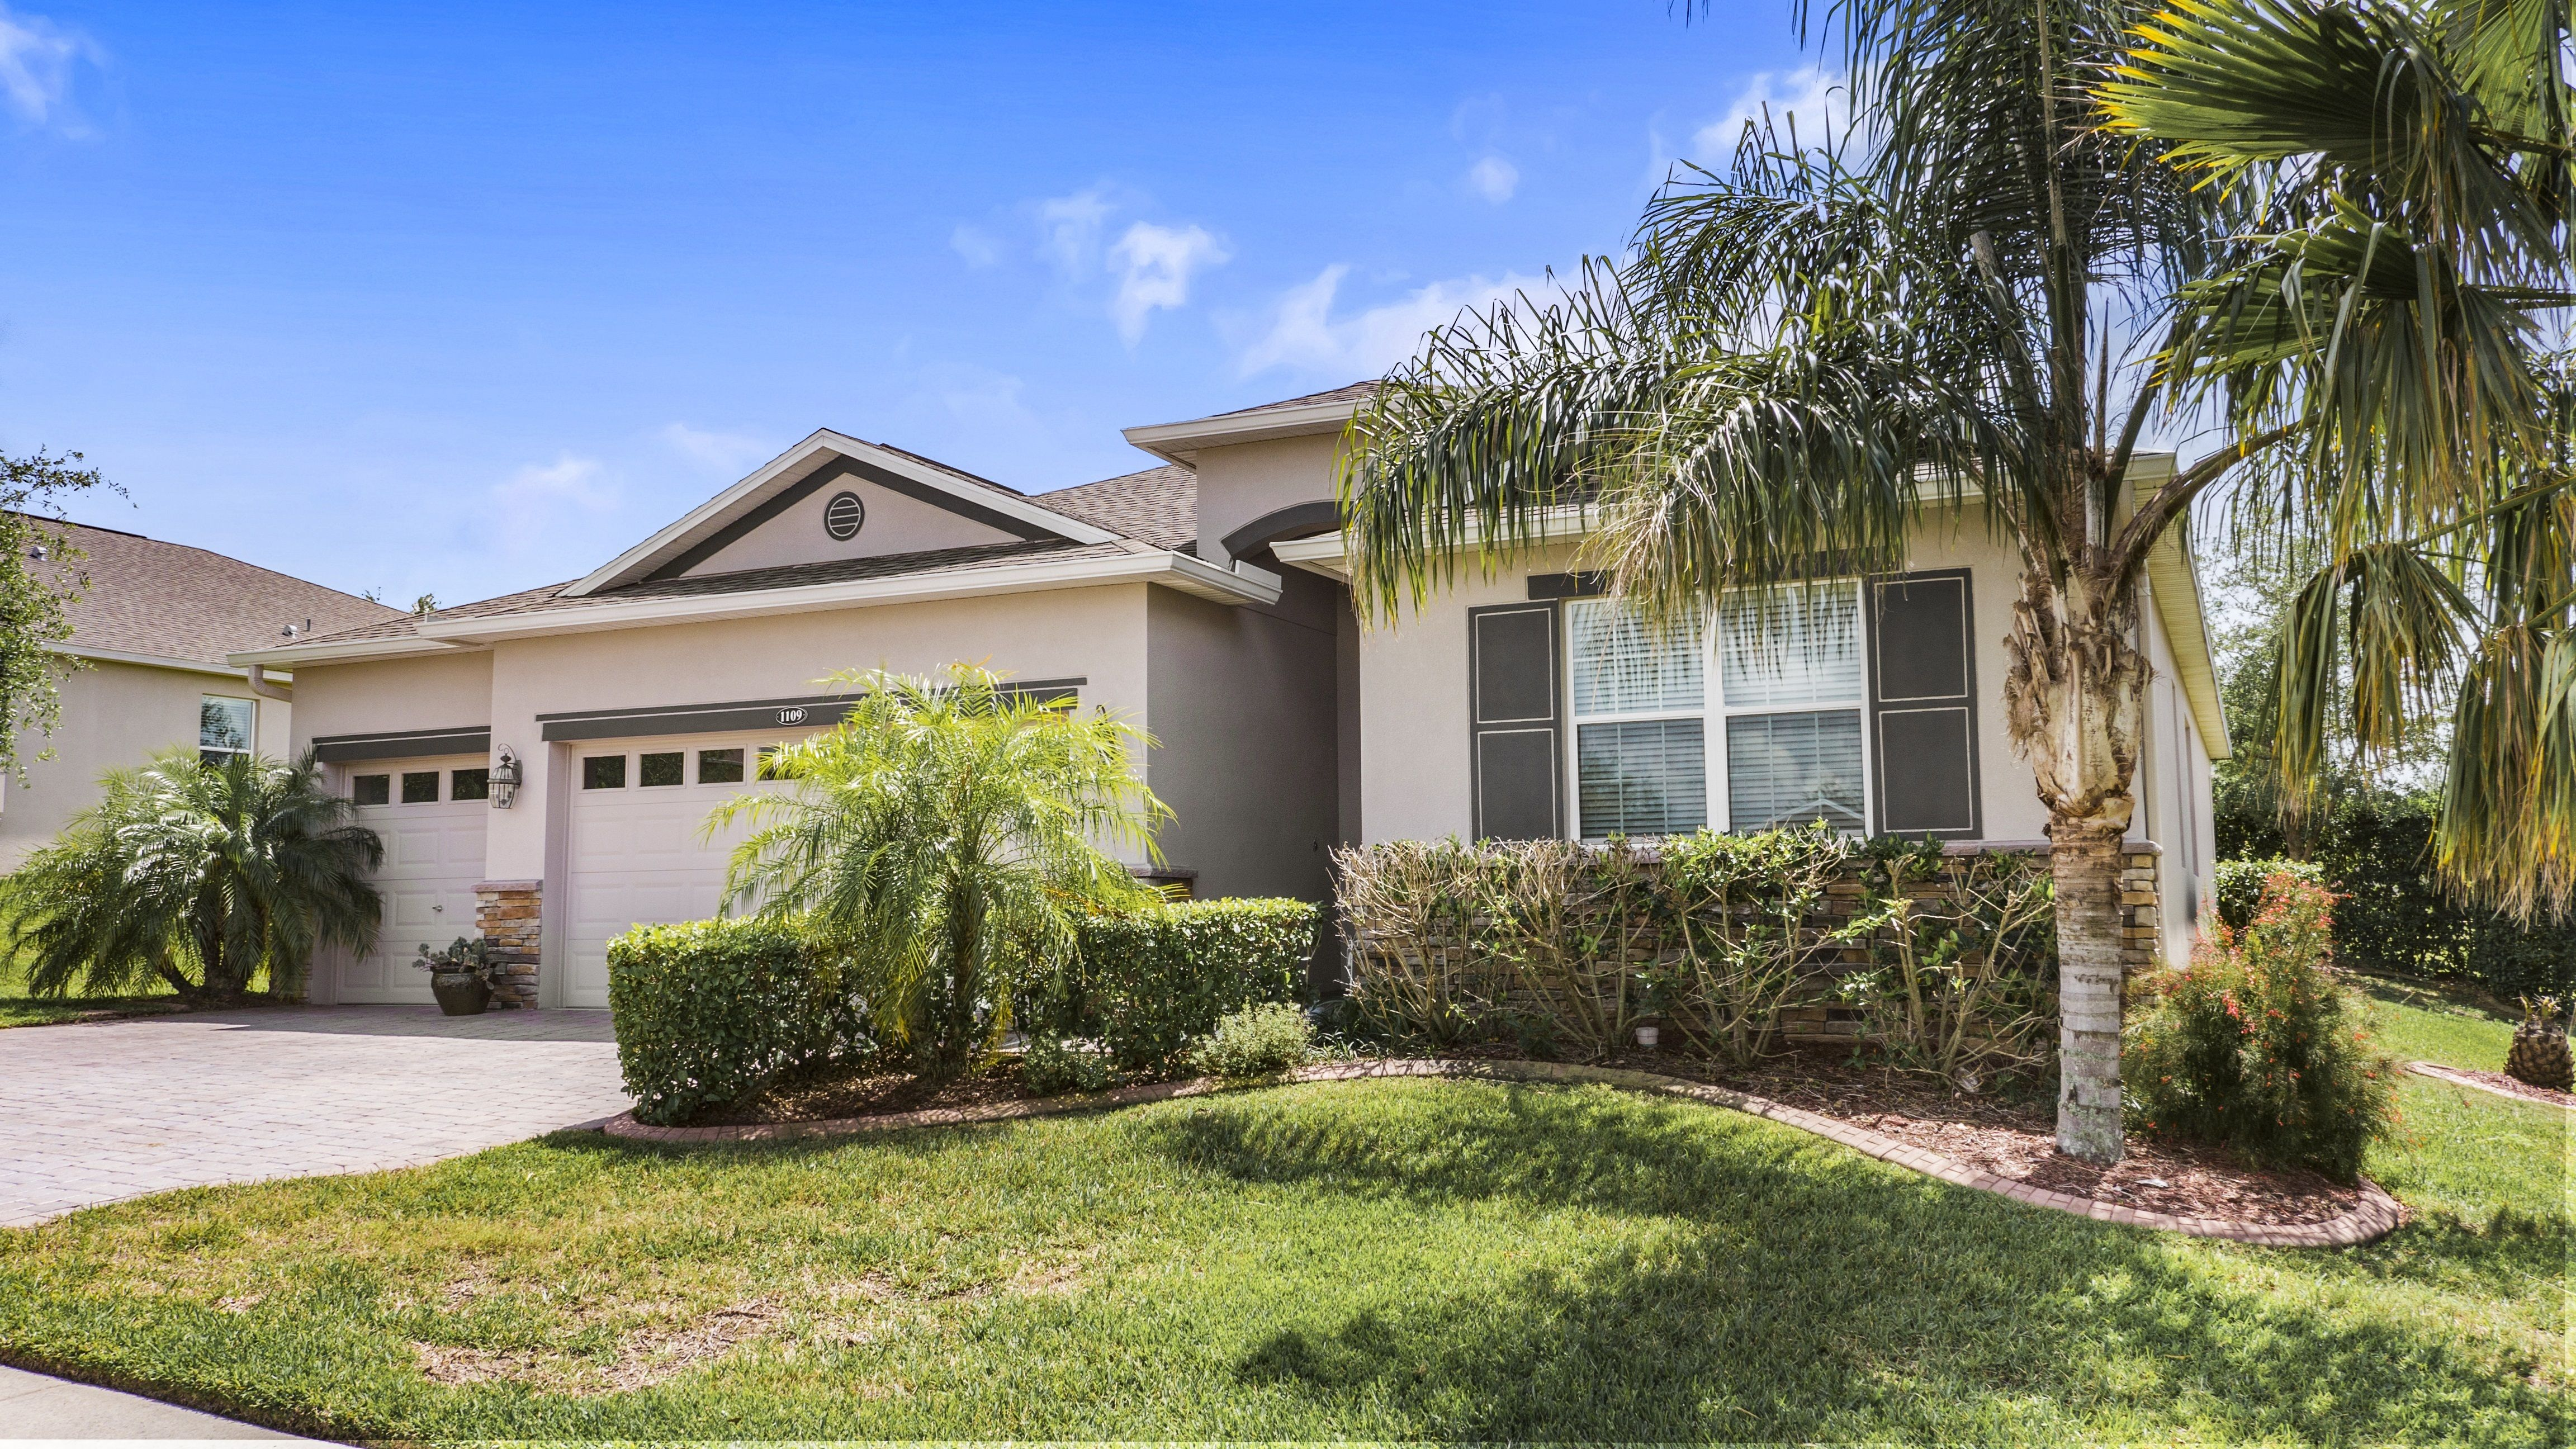 Clermont fl homes for sale and market update for 2018